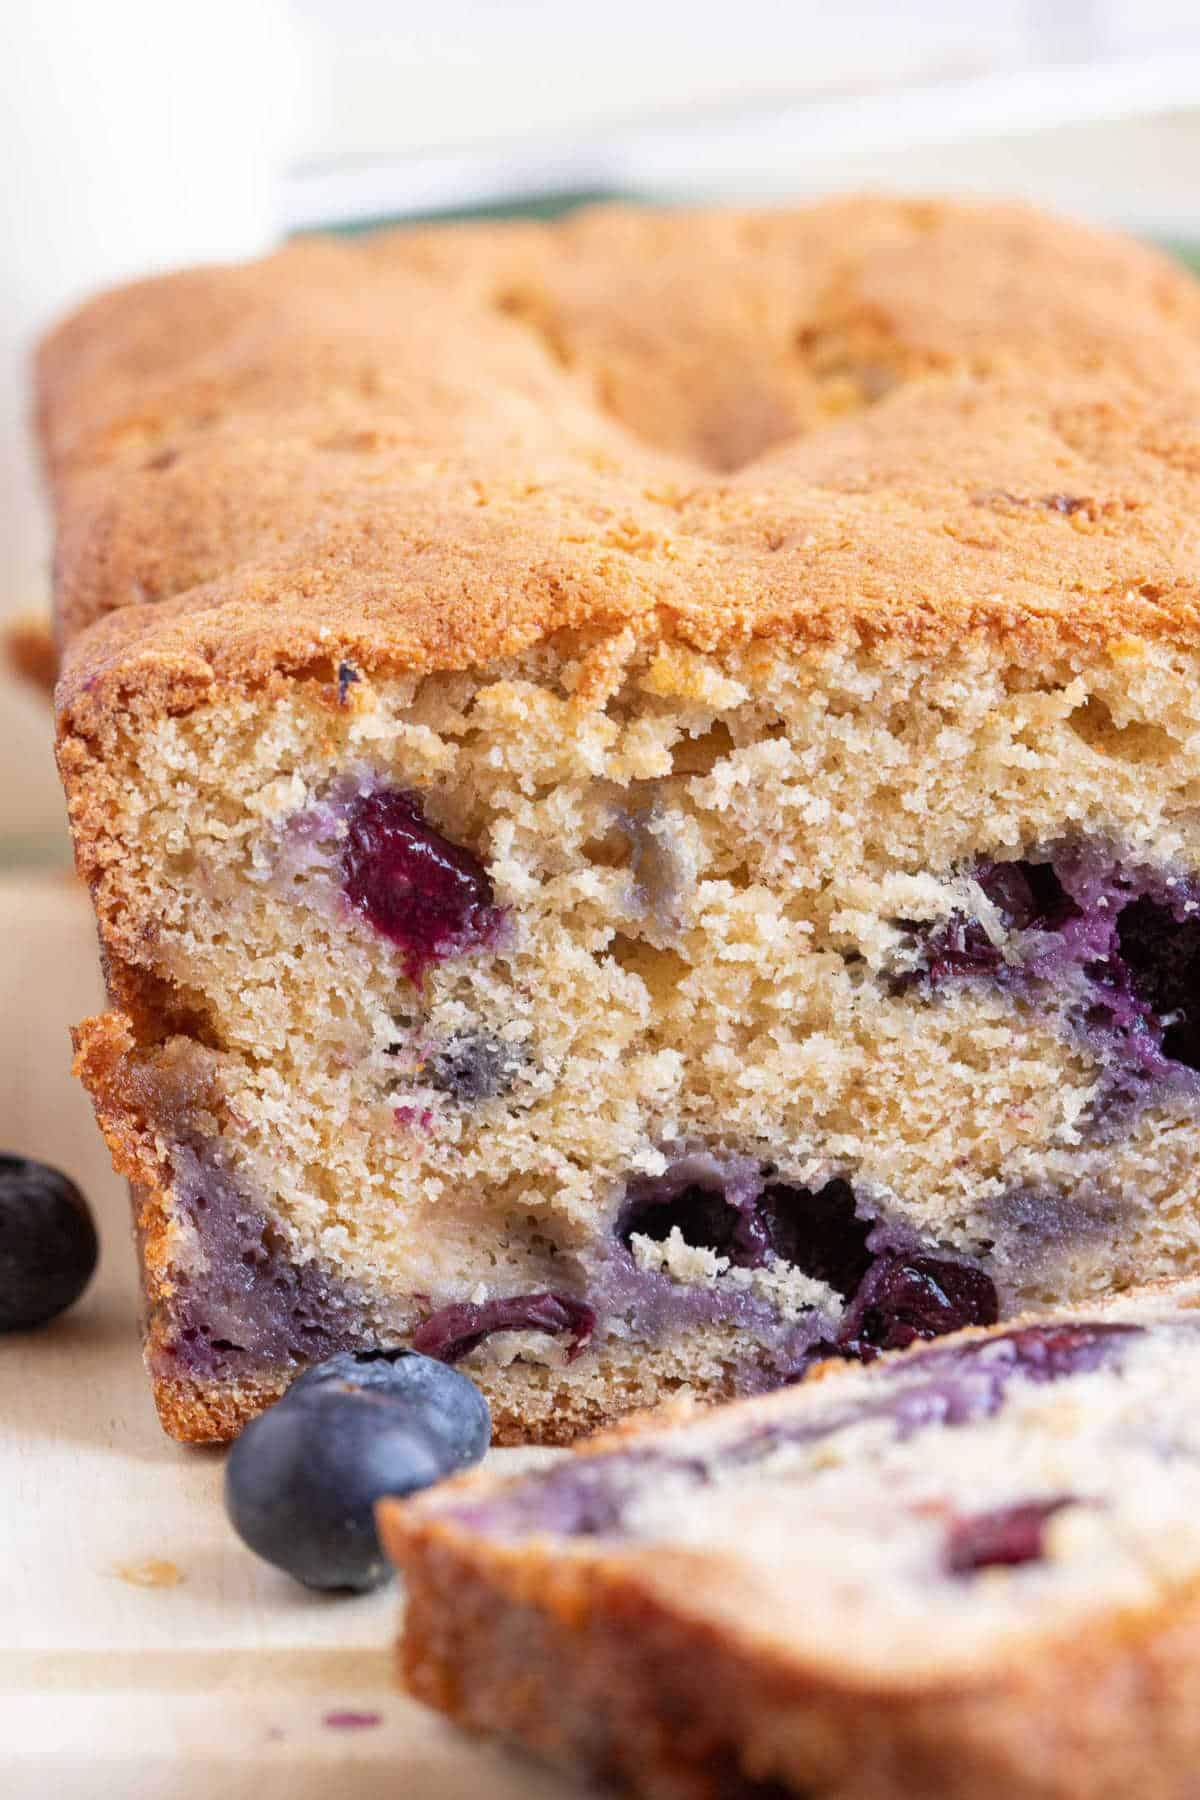 Close-up of the banana blueberry loaf cake.